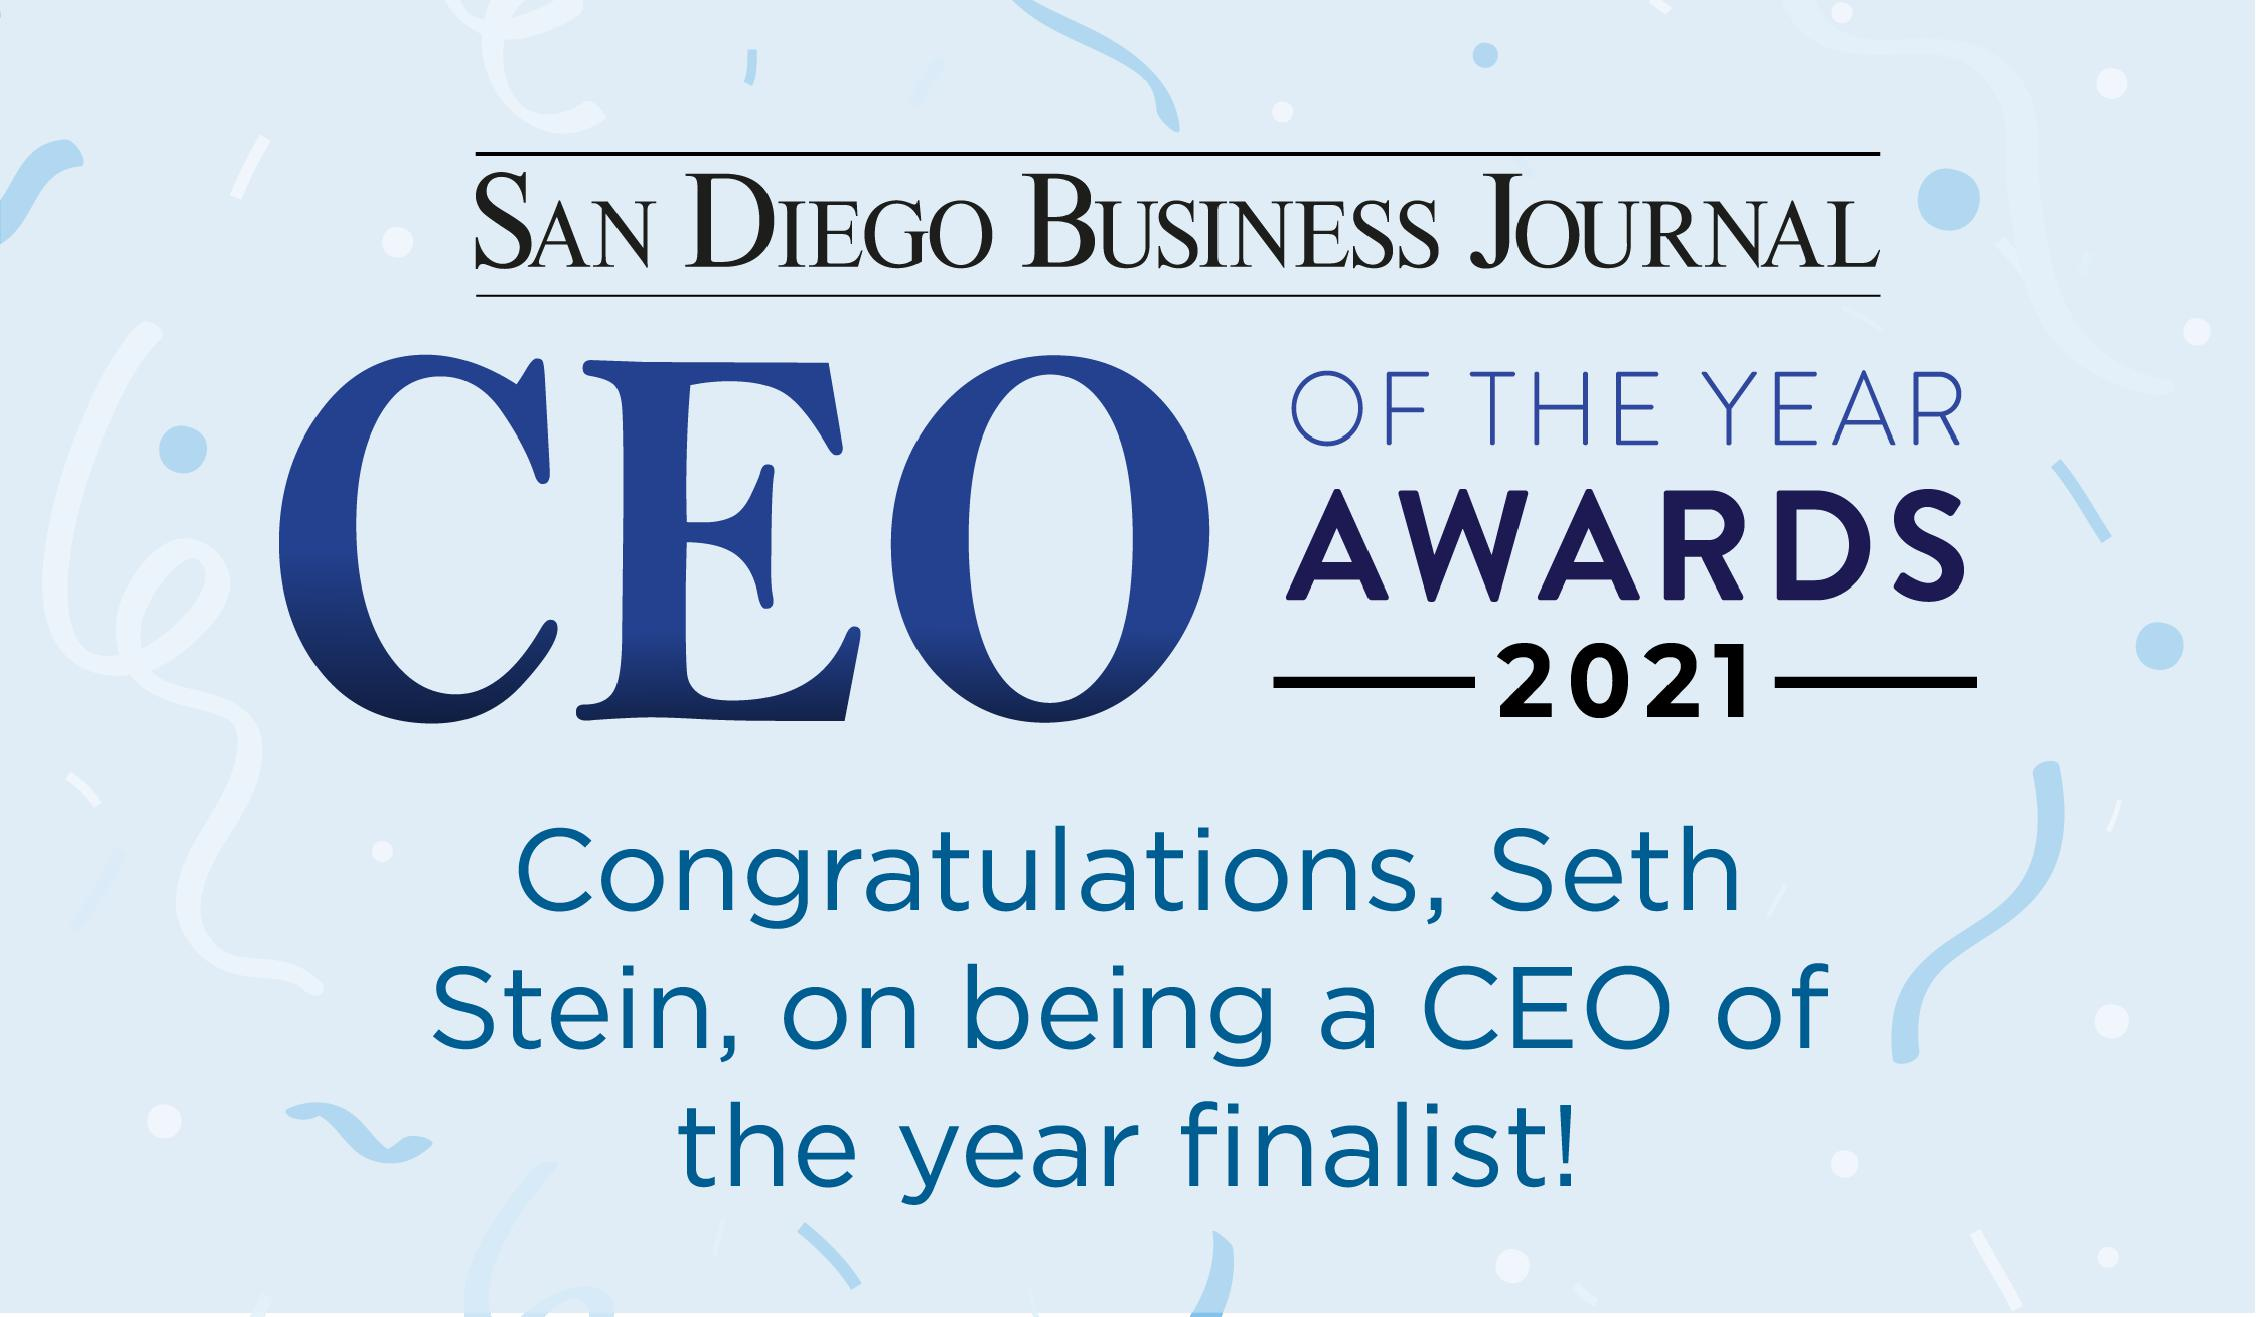 The San Diego Business Journal 2021 CEO of the Year Awards